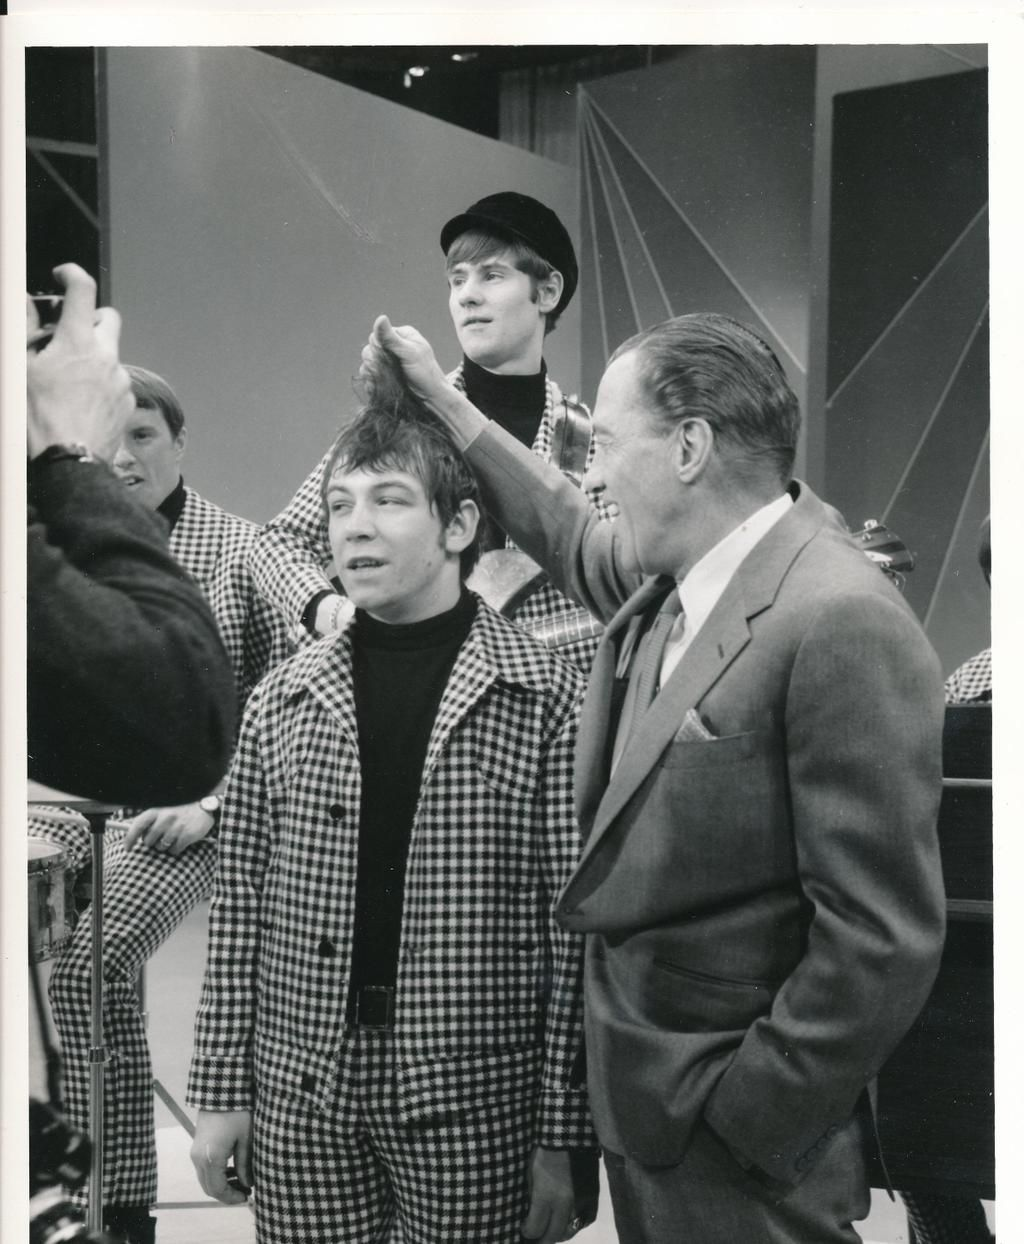 Image of: Misunderstood Here He Is With Ed Sullivan And The Animals On The Ed Sullivan Show In 1966 Pinterest Edsullivanshow On Eric Burdon Pinterest Music British